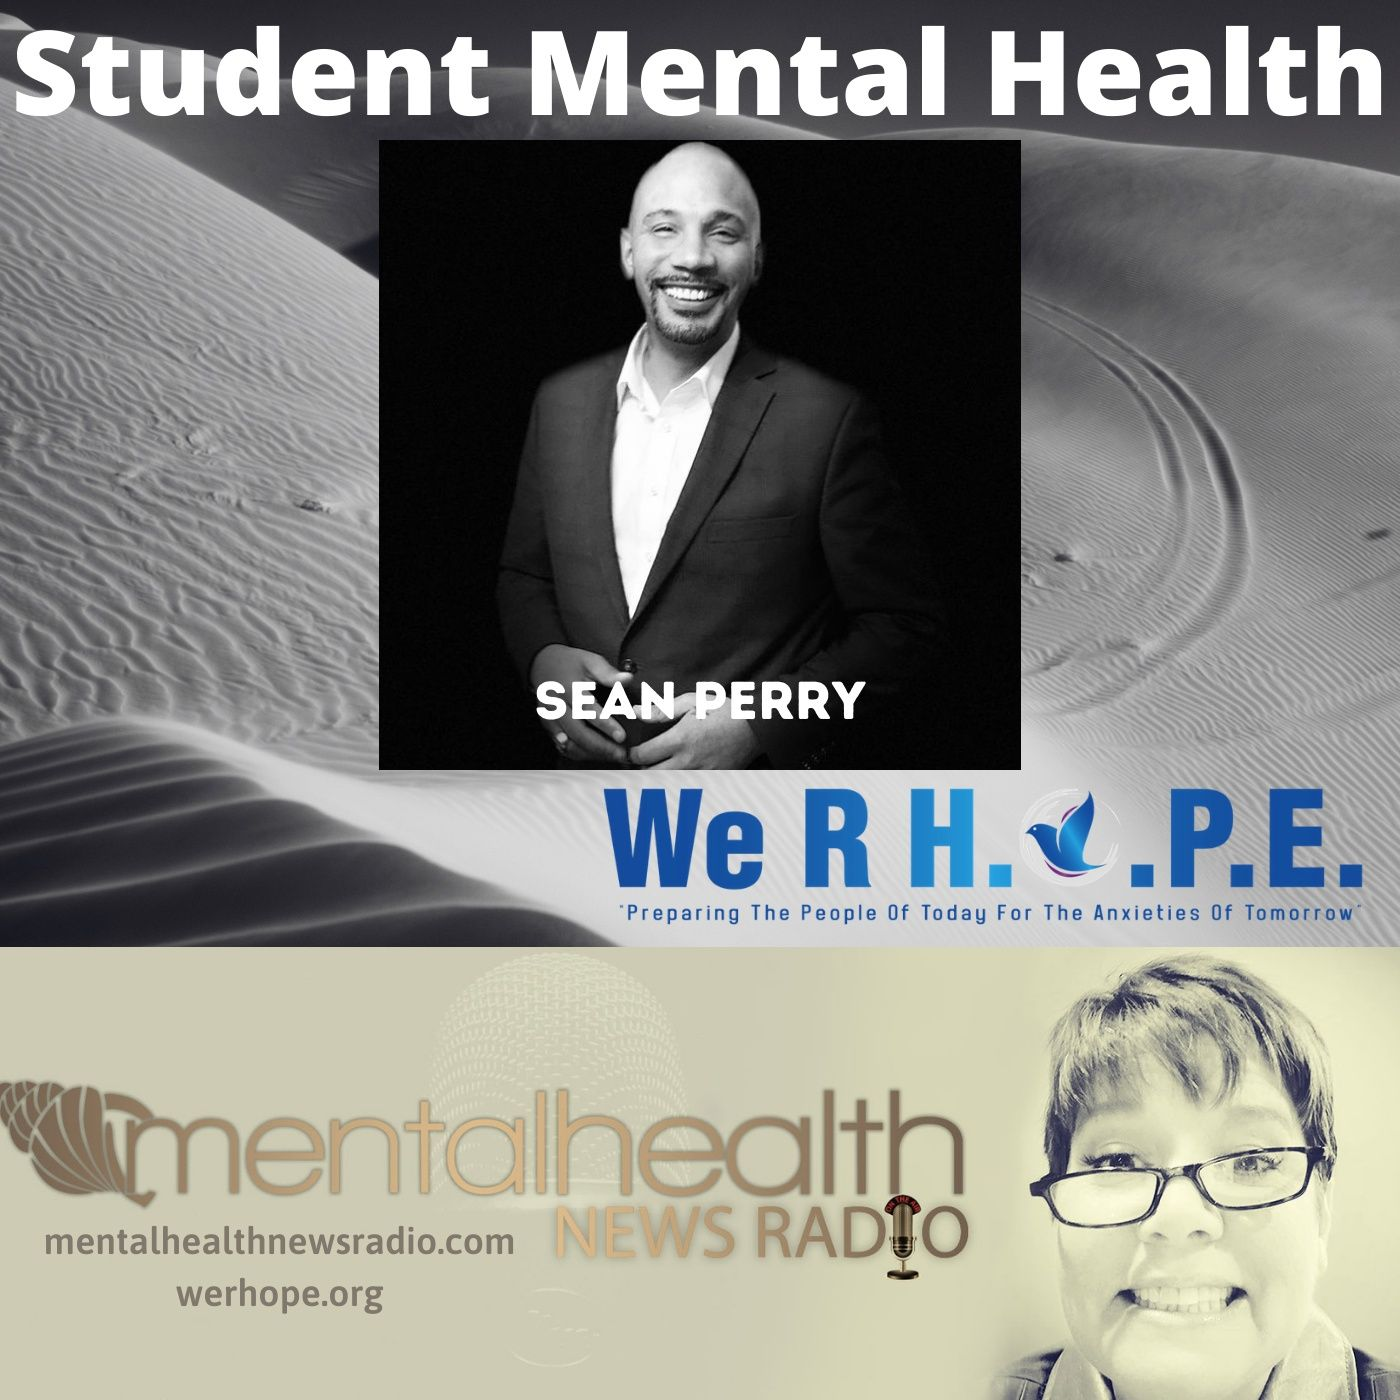 Mental Health News Radio - Student Mental Health with Sean Perry